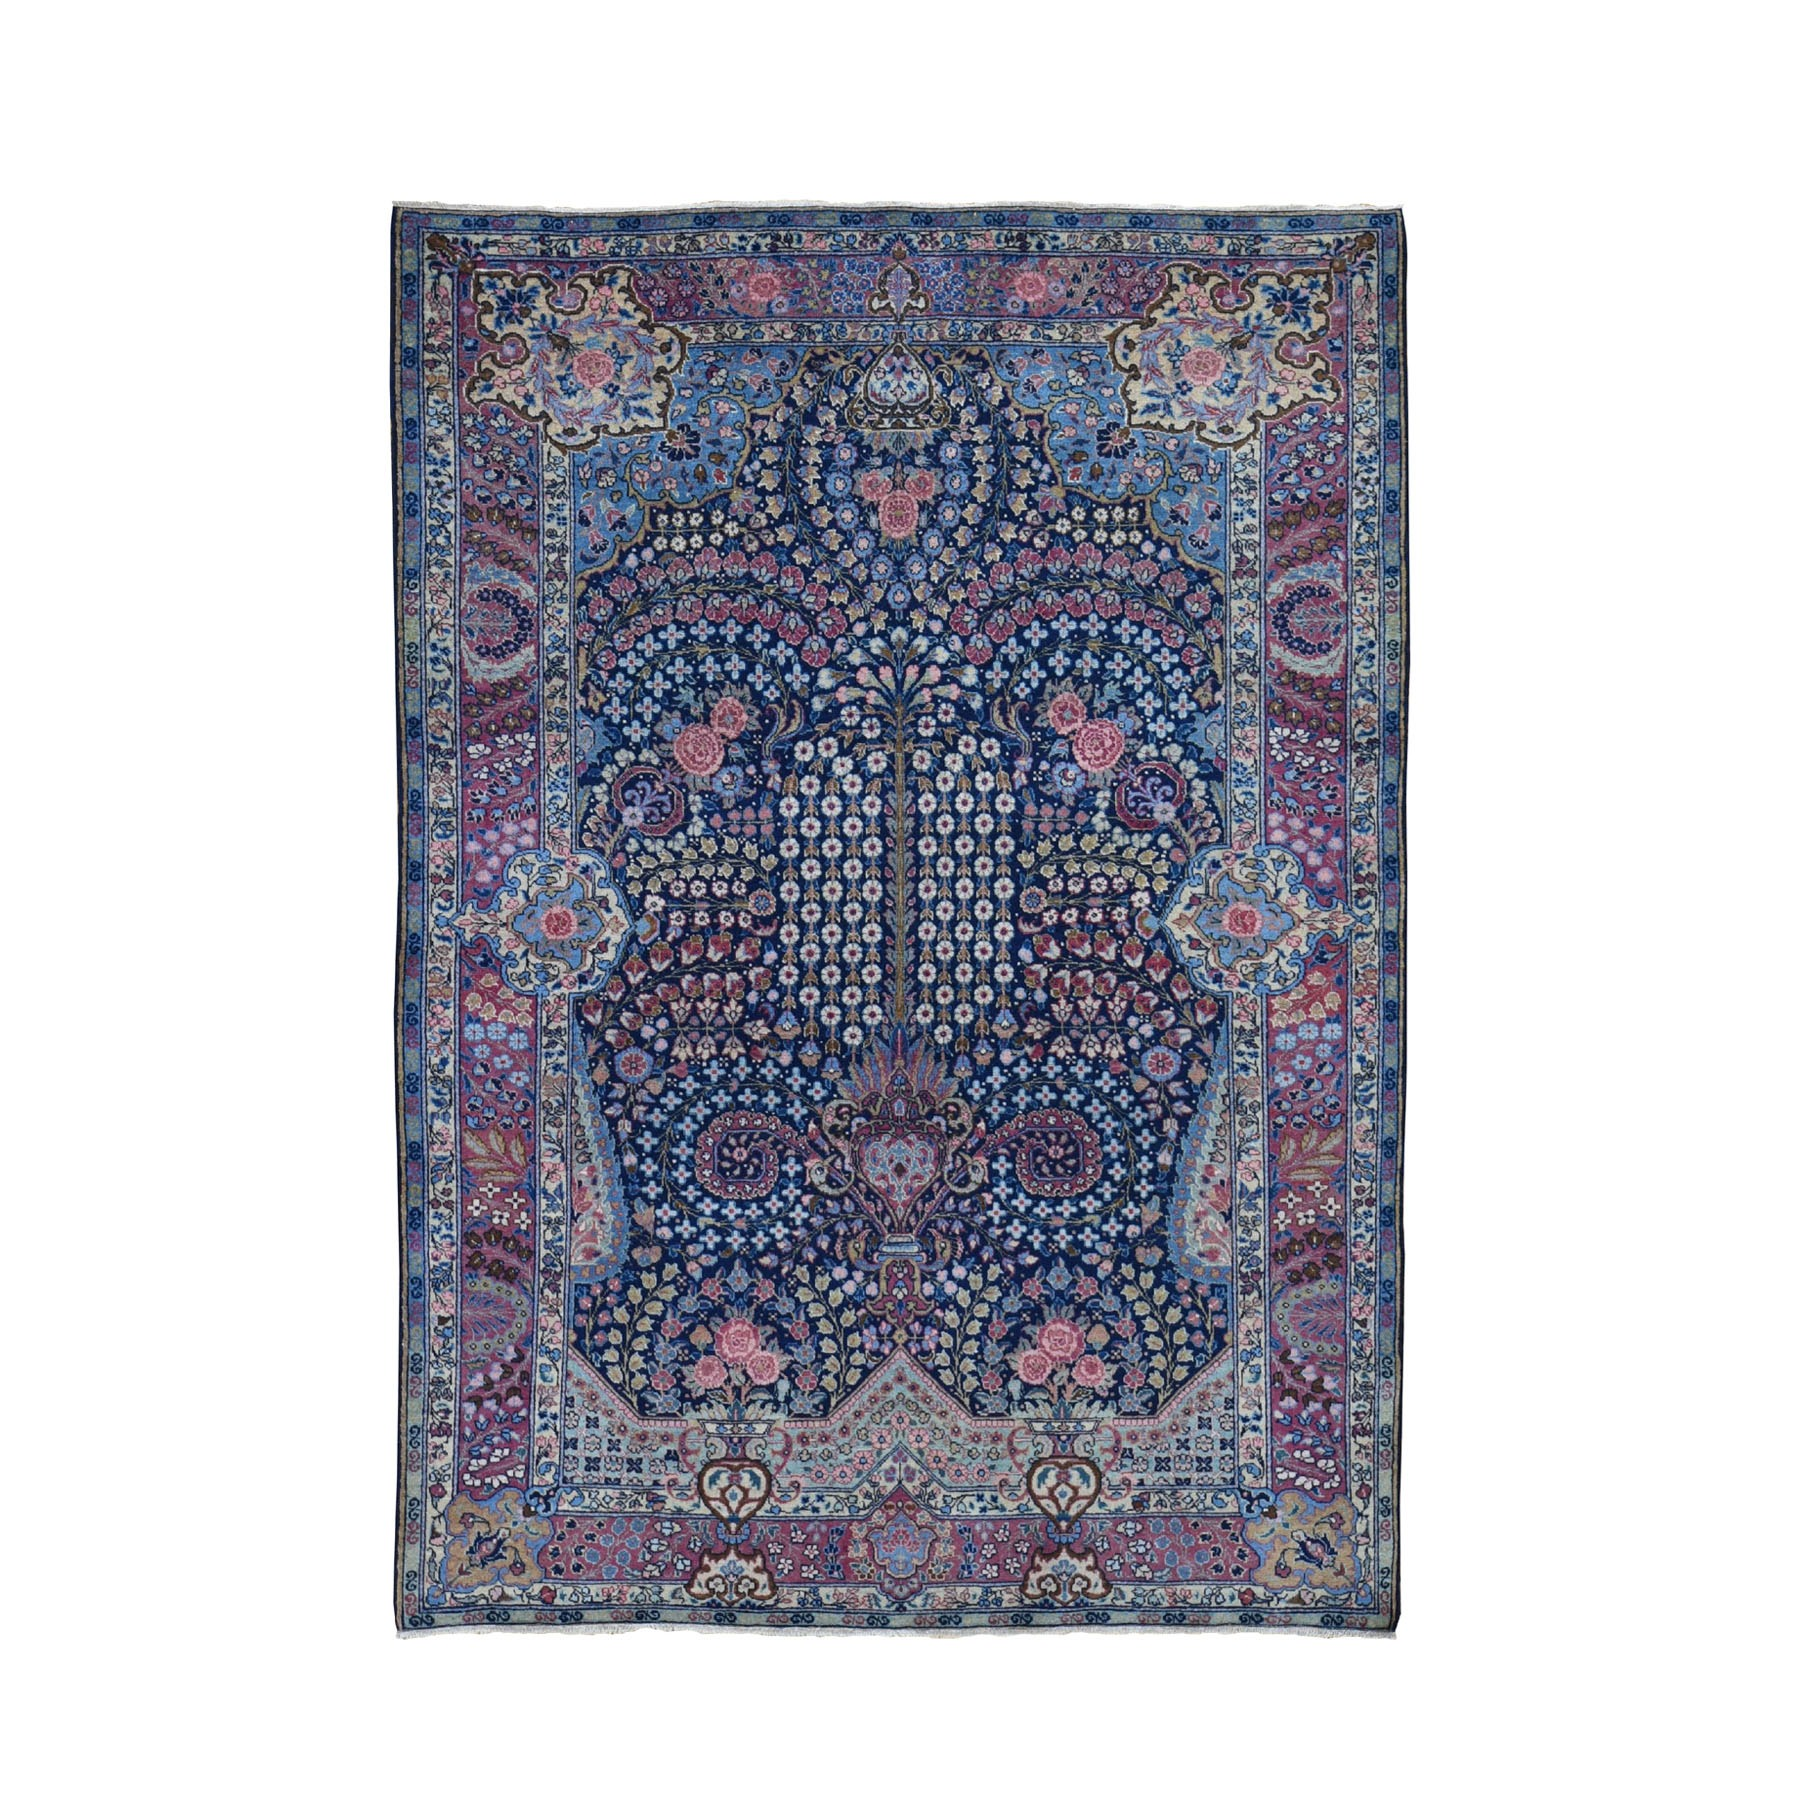 "4'7""x6'4"" Navy Blue Antique Persian Tabriz Full Pile Peacock & Flower Design Exc Condition Oriental Rug"